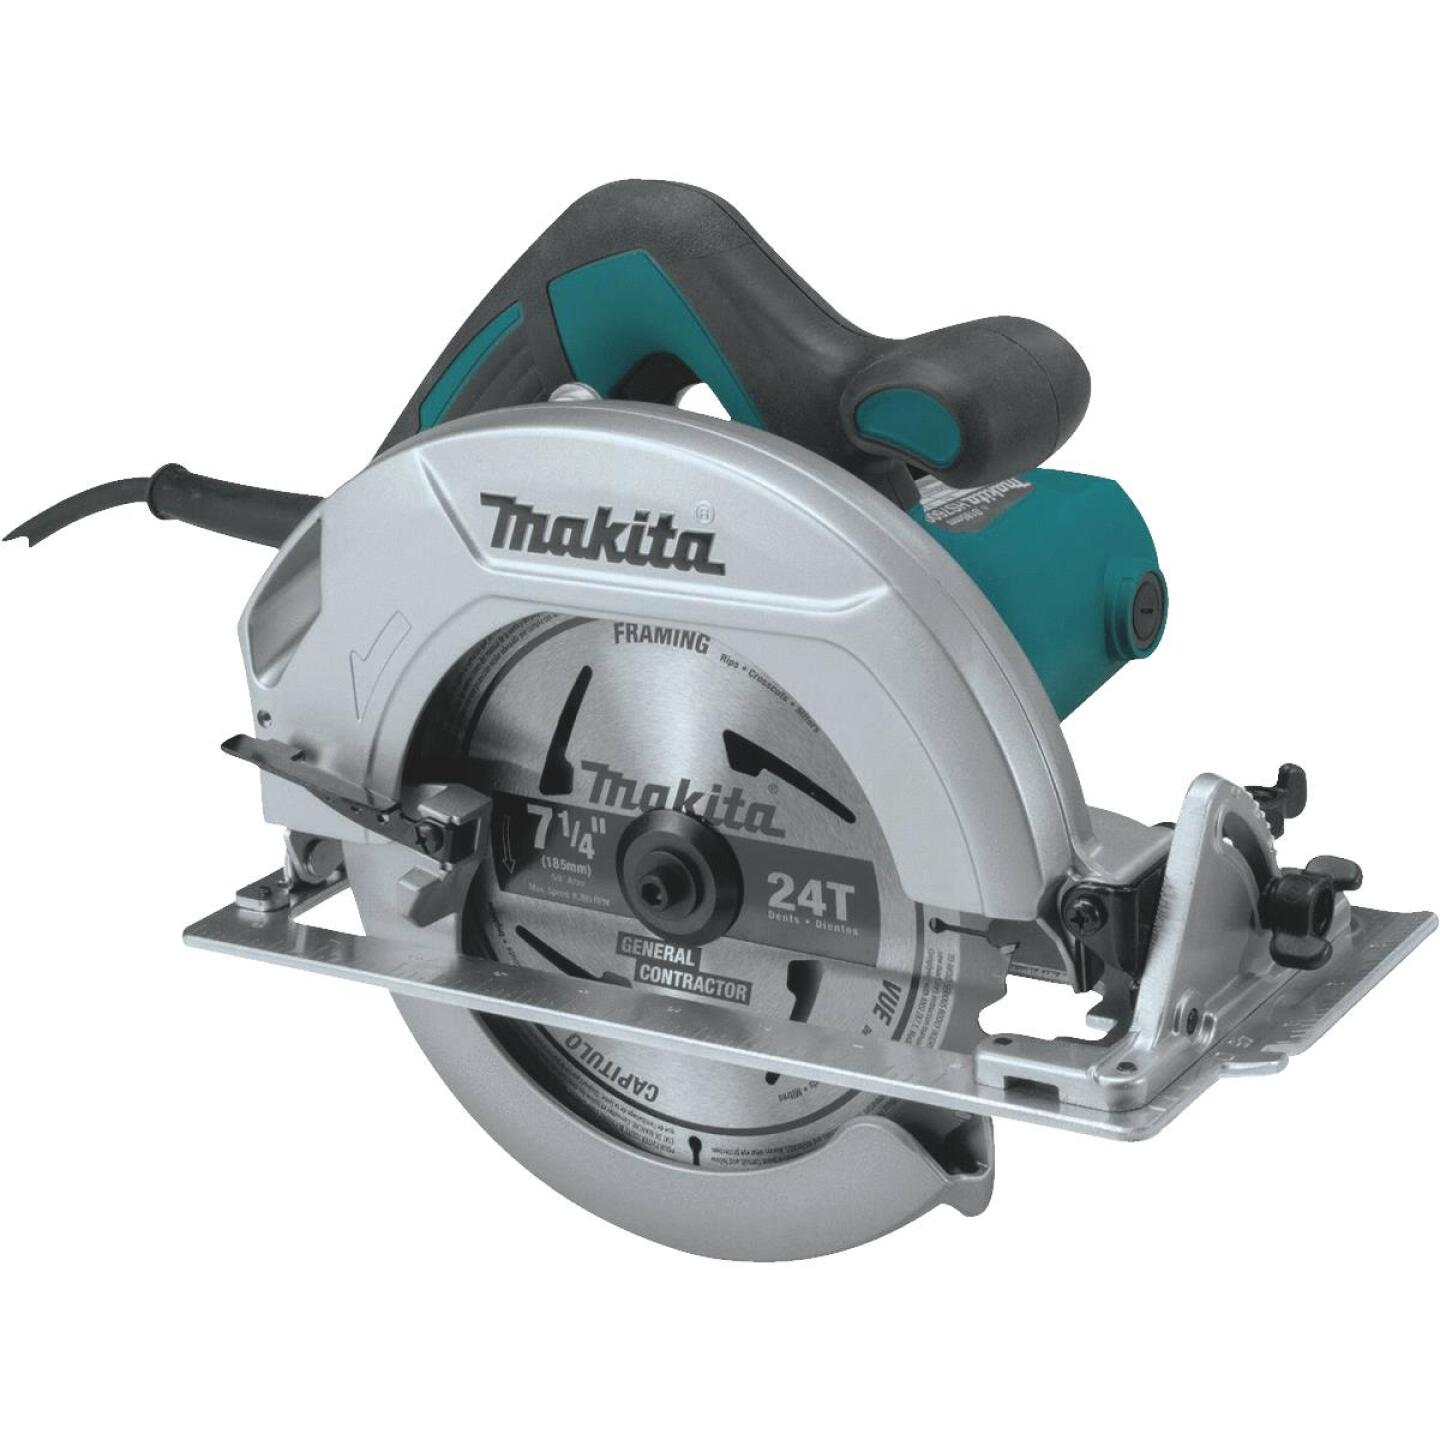 Makita 7-1/4 In. 10.5-Amp Circular Saw Image 1